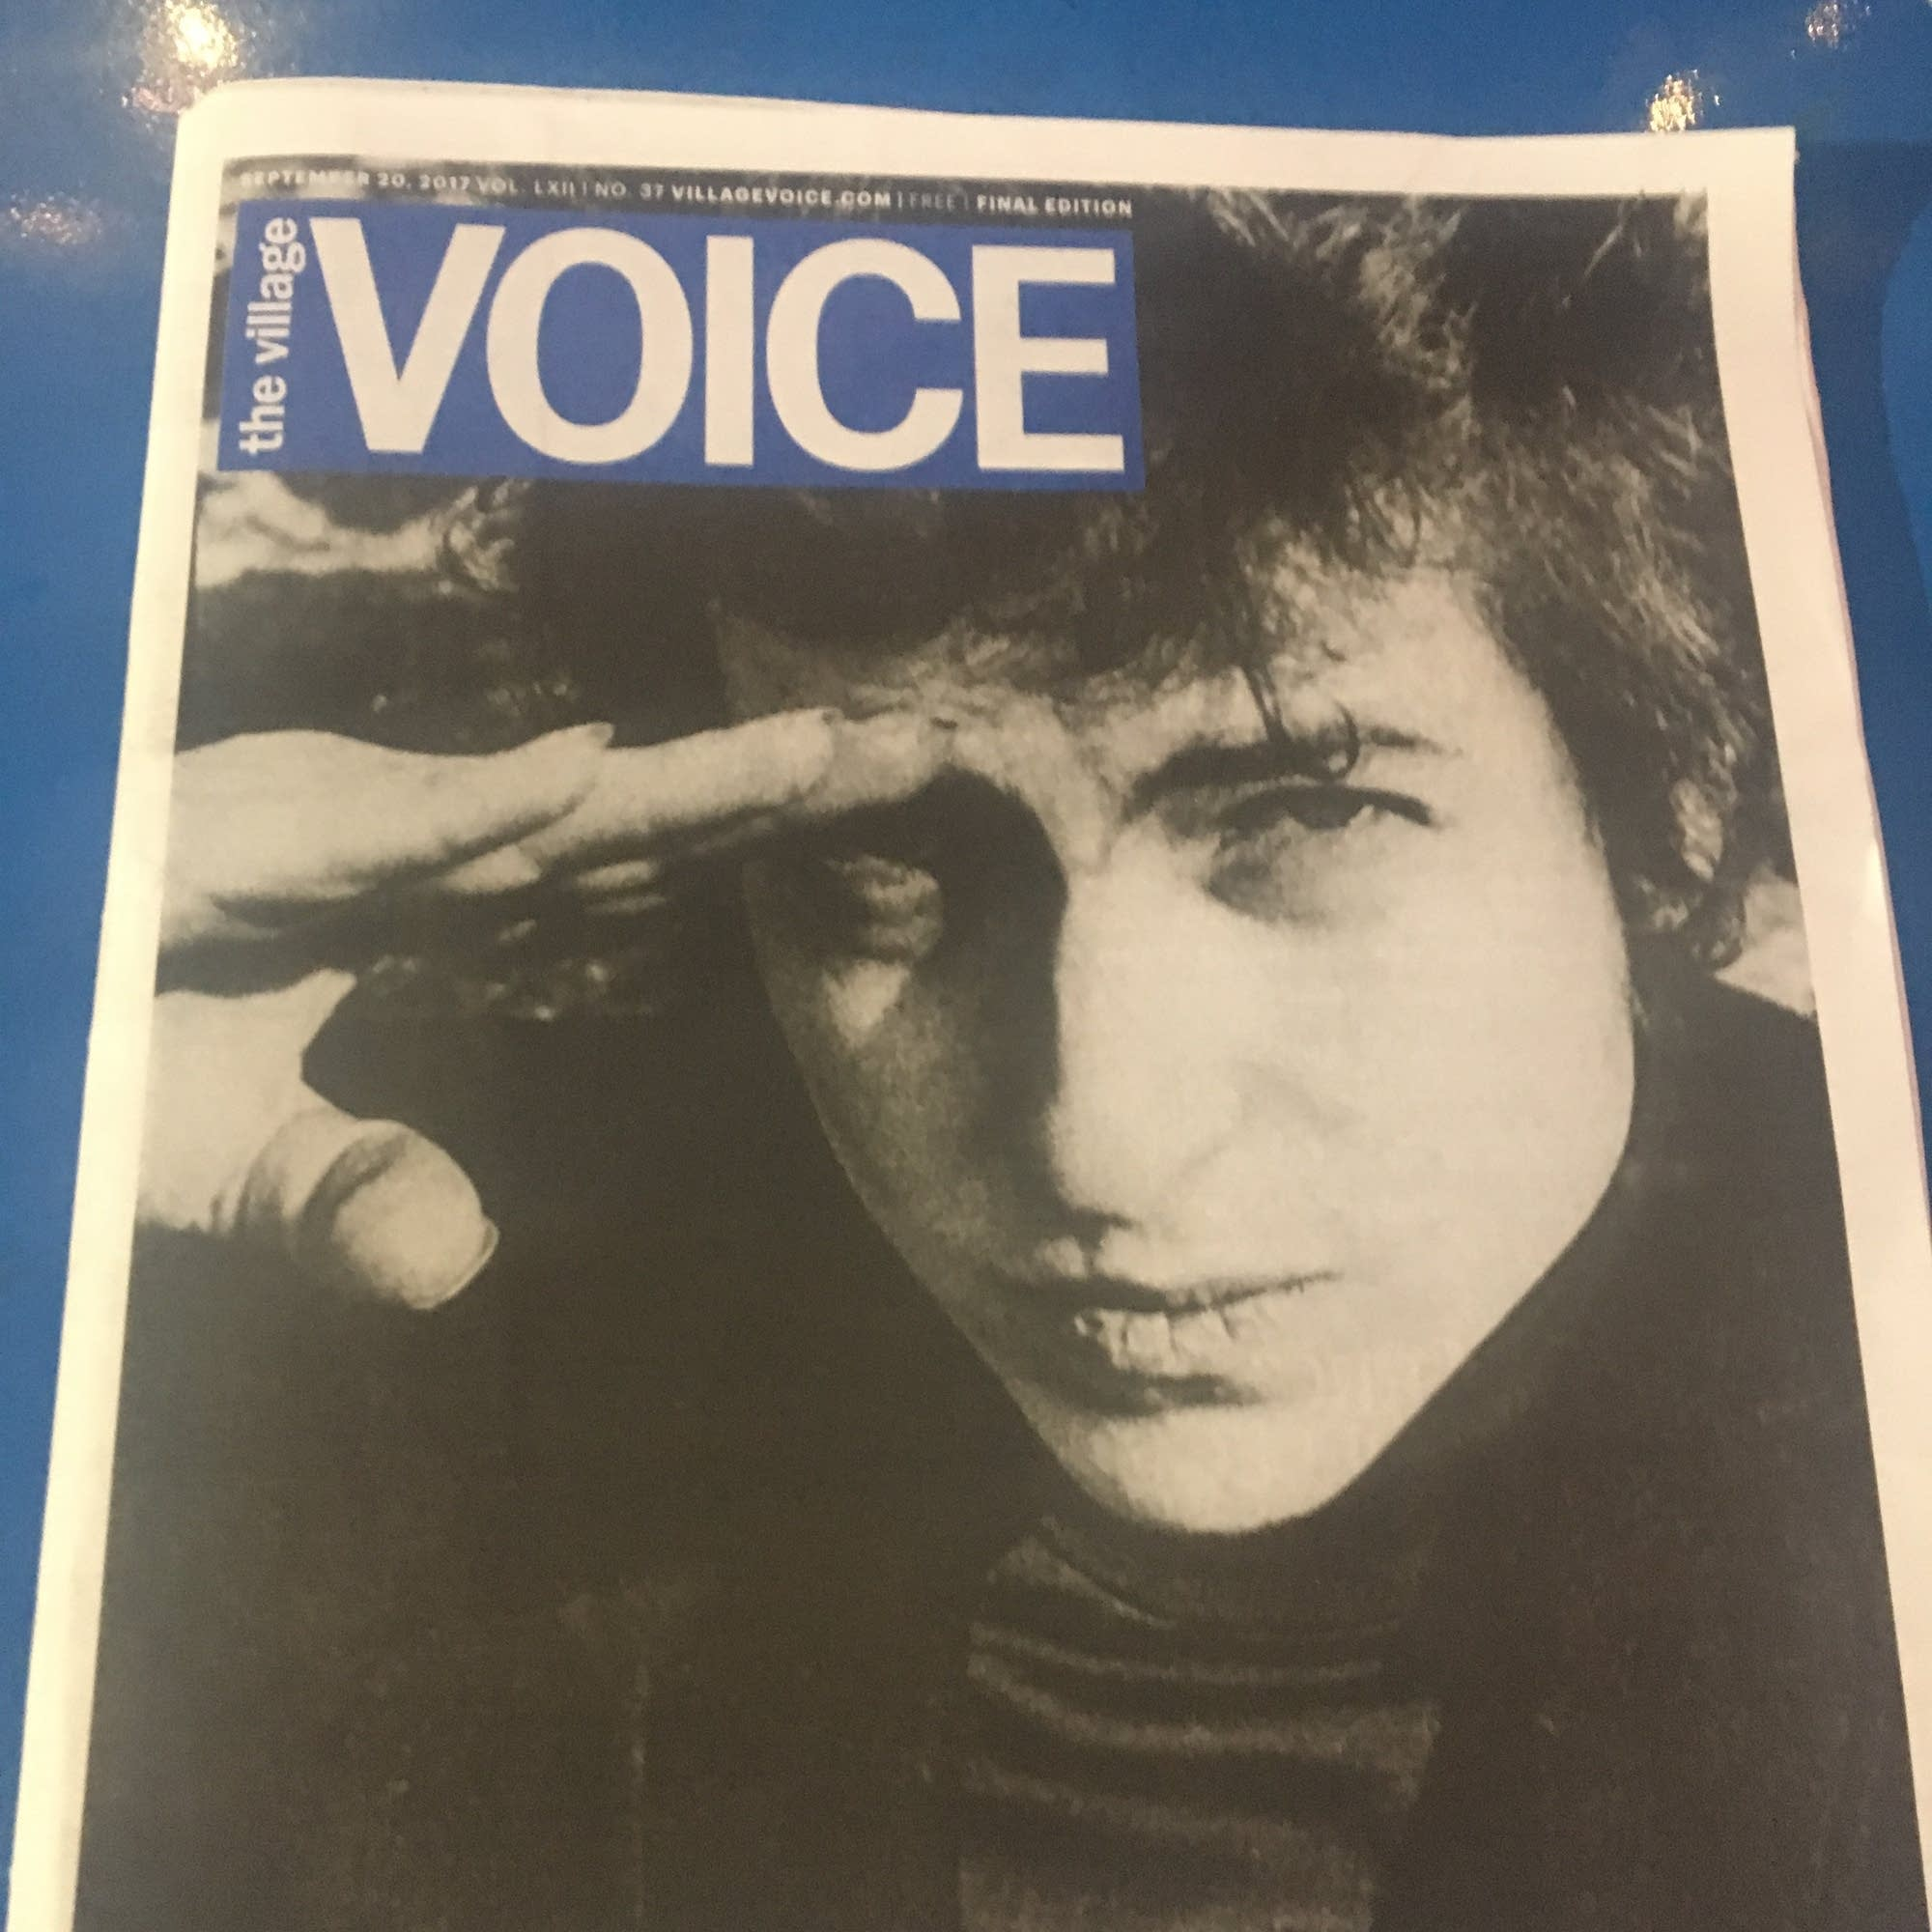 Bob Dylan on the cover of the final Village Voice print edition.